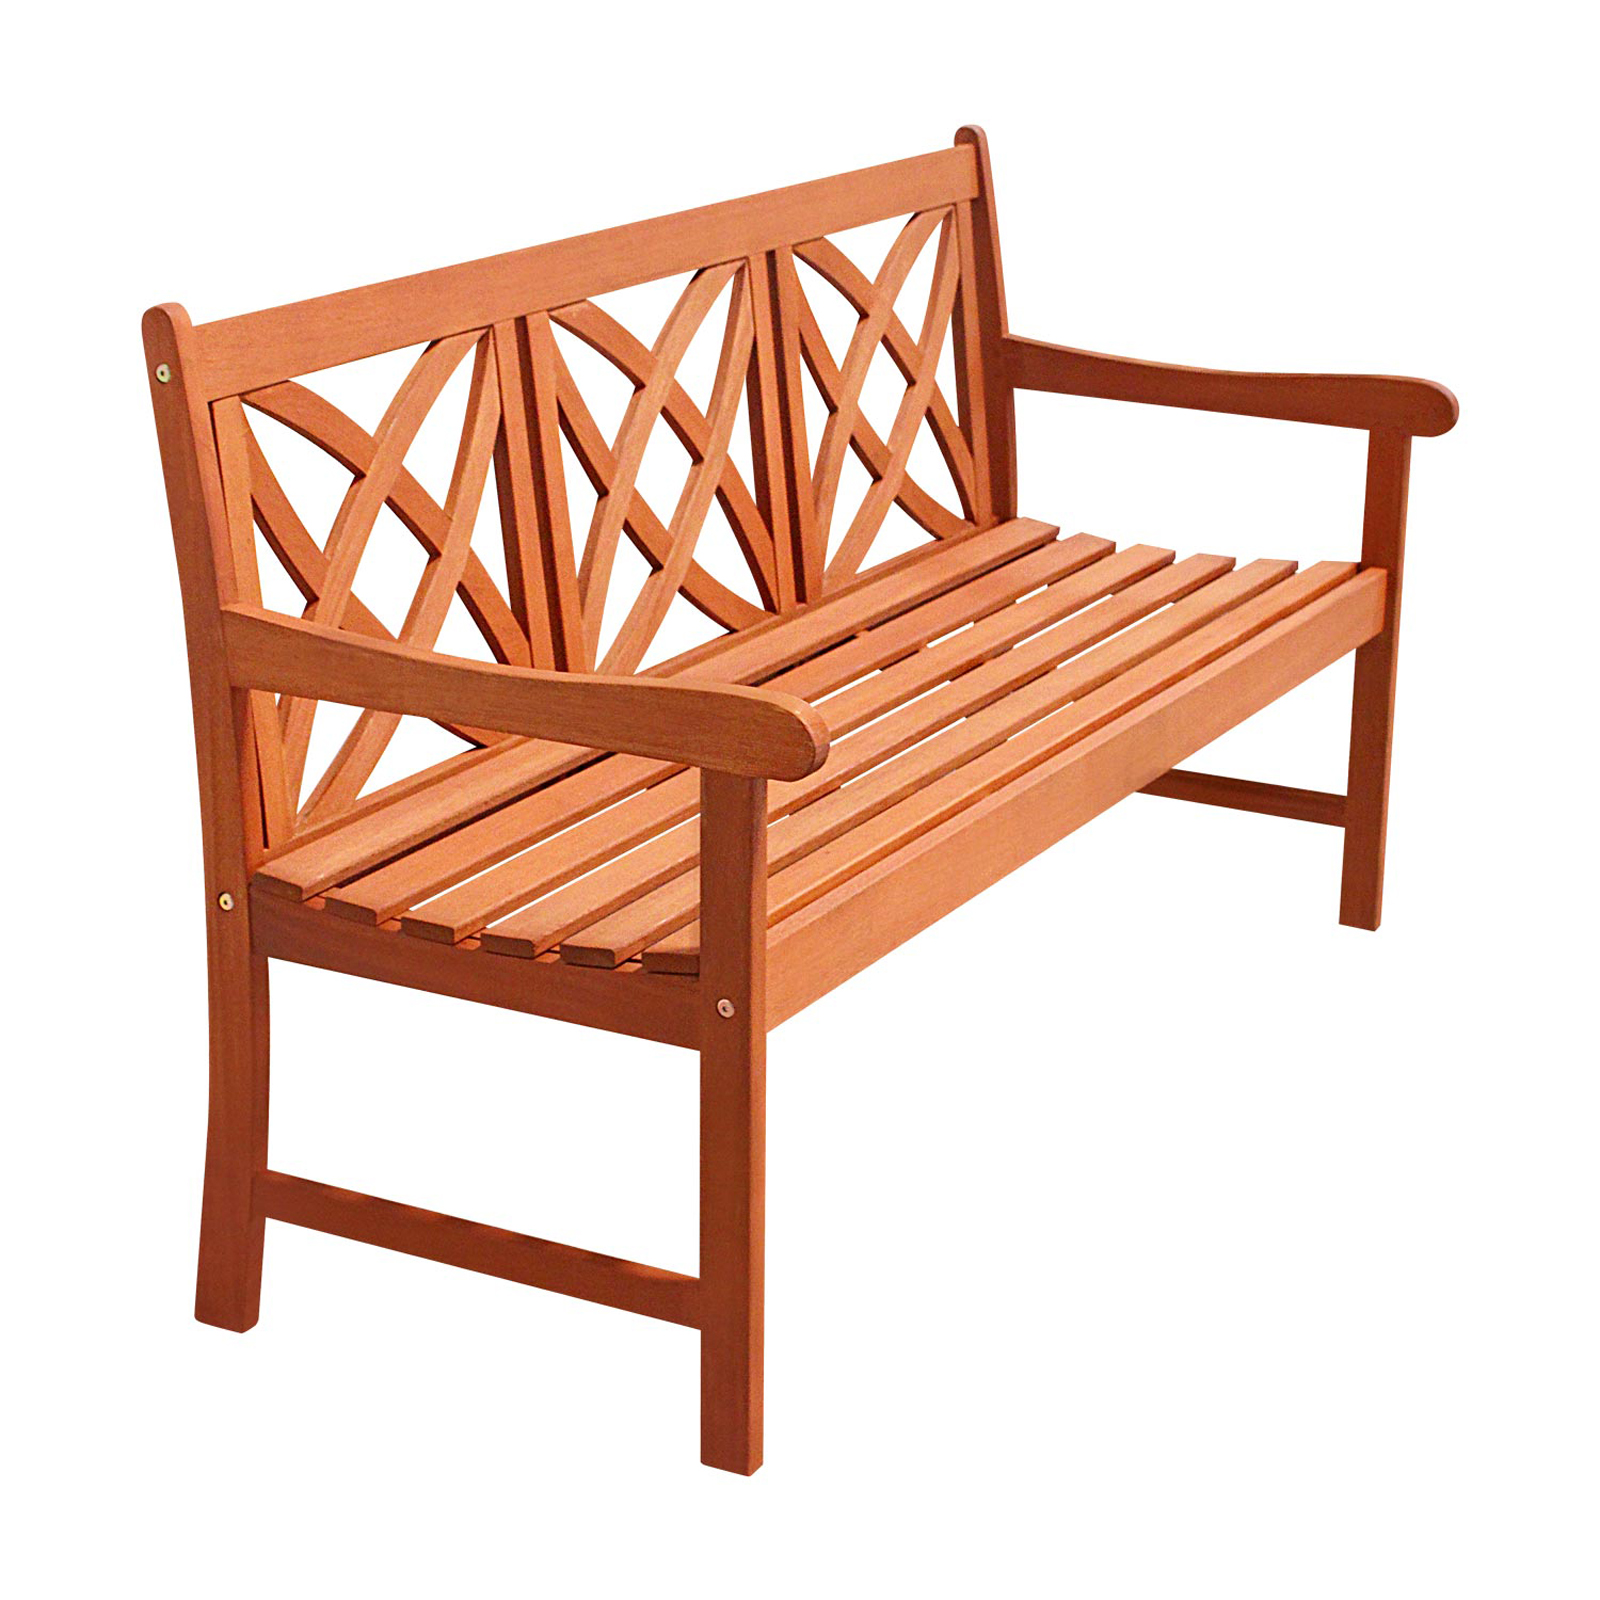 Vifah 5 Ft Wood Garden Bench